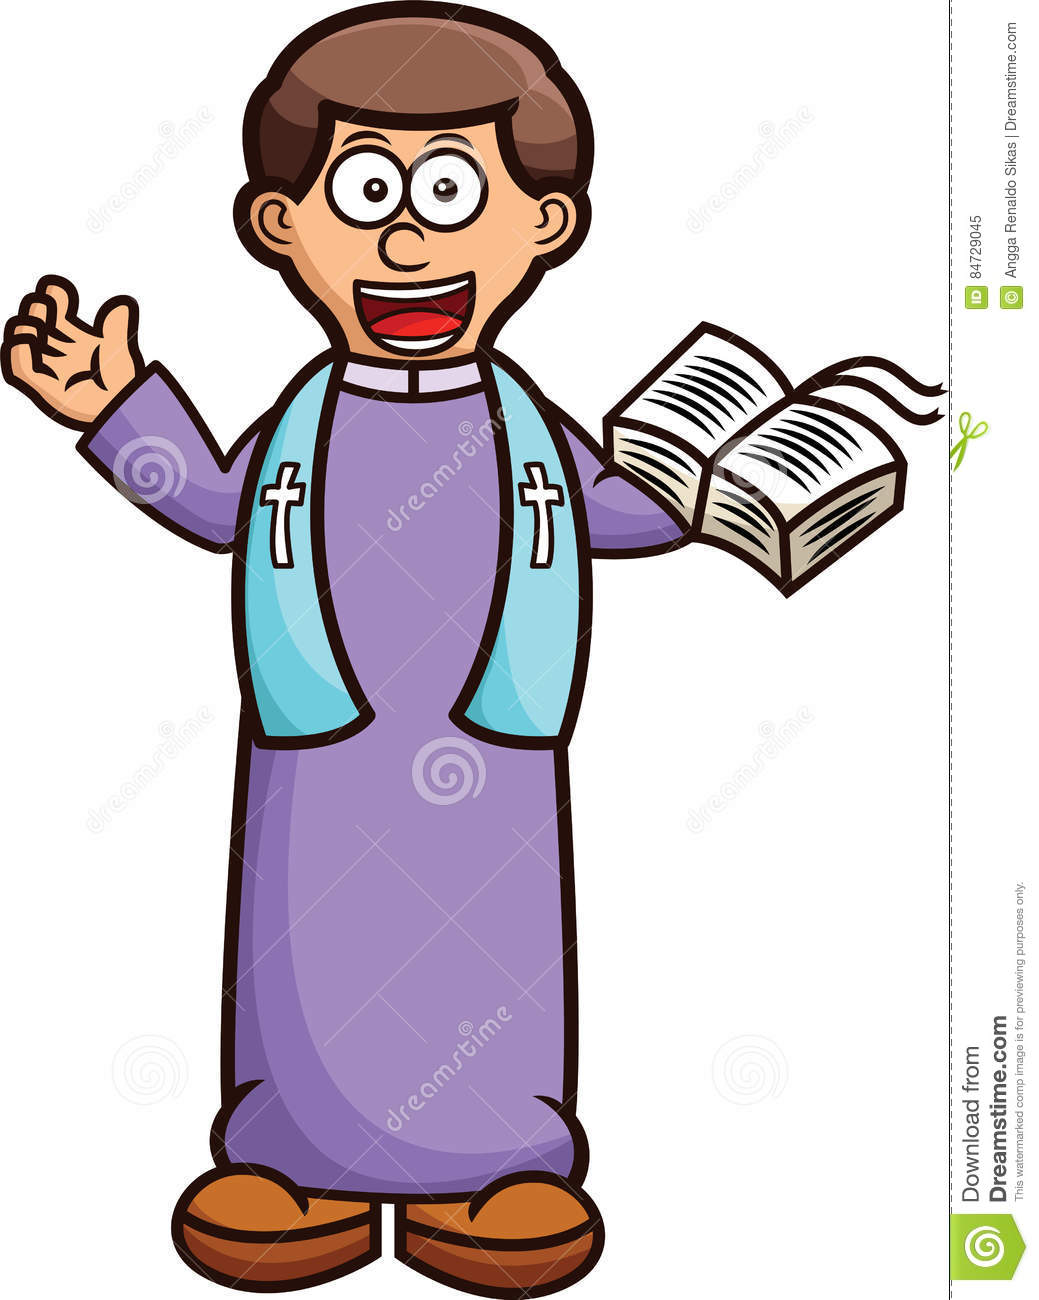 hight resolution of pastor bible stock illustrations 644 pastor bible stock illustrations vectors clipart dreamstime